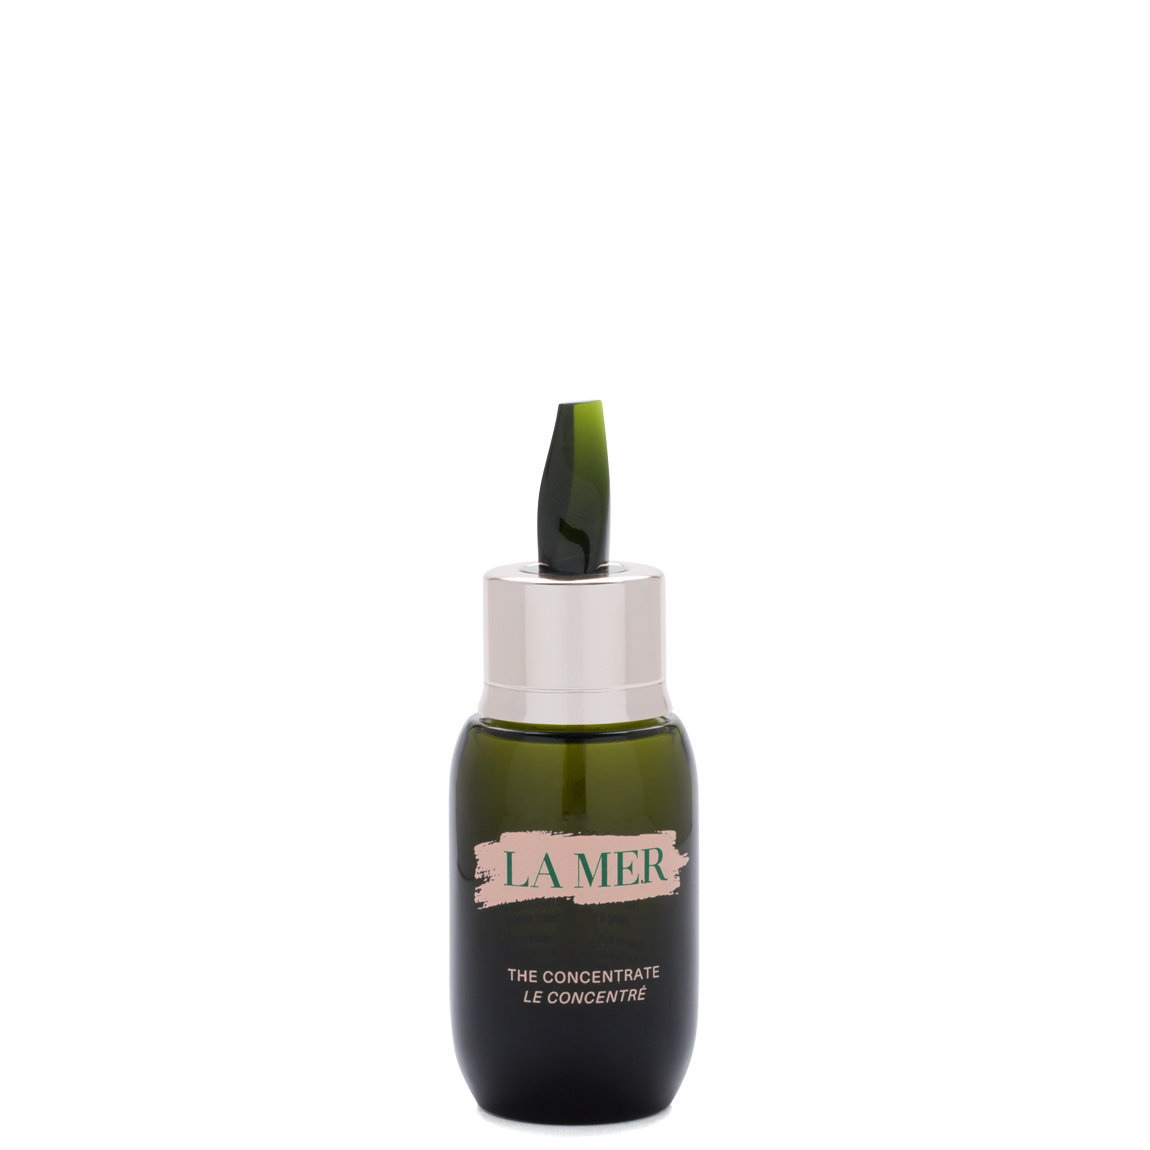 La Mer The Concentrate 1 oz product swatch.